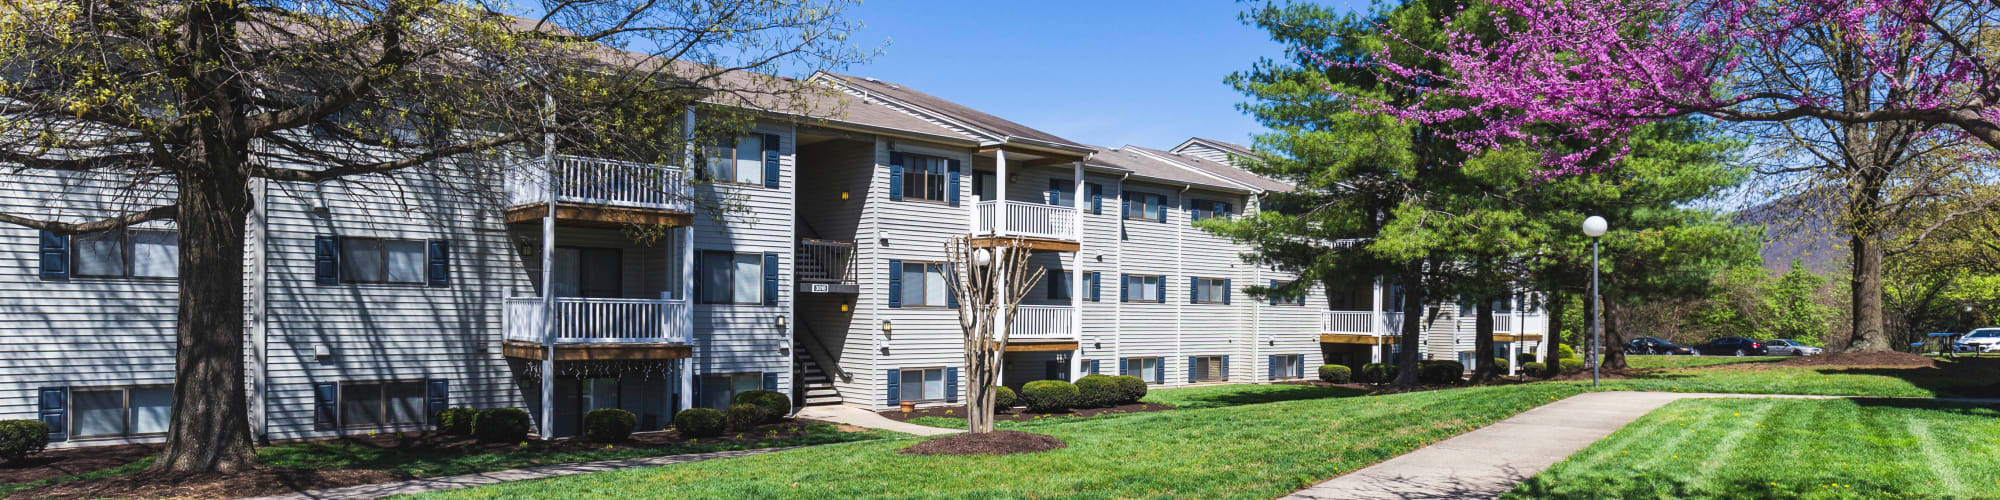 Hickory Woods Apartments's pet policy in Roanoke, Virginia